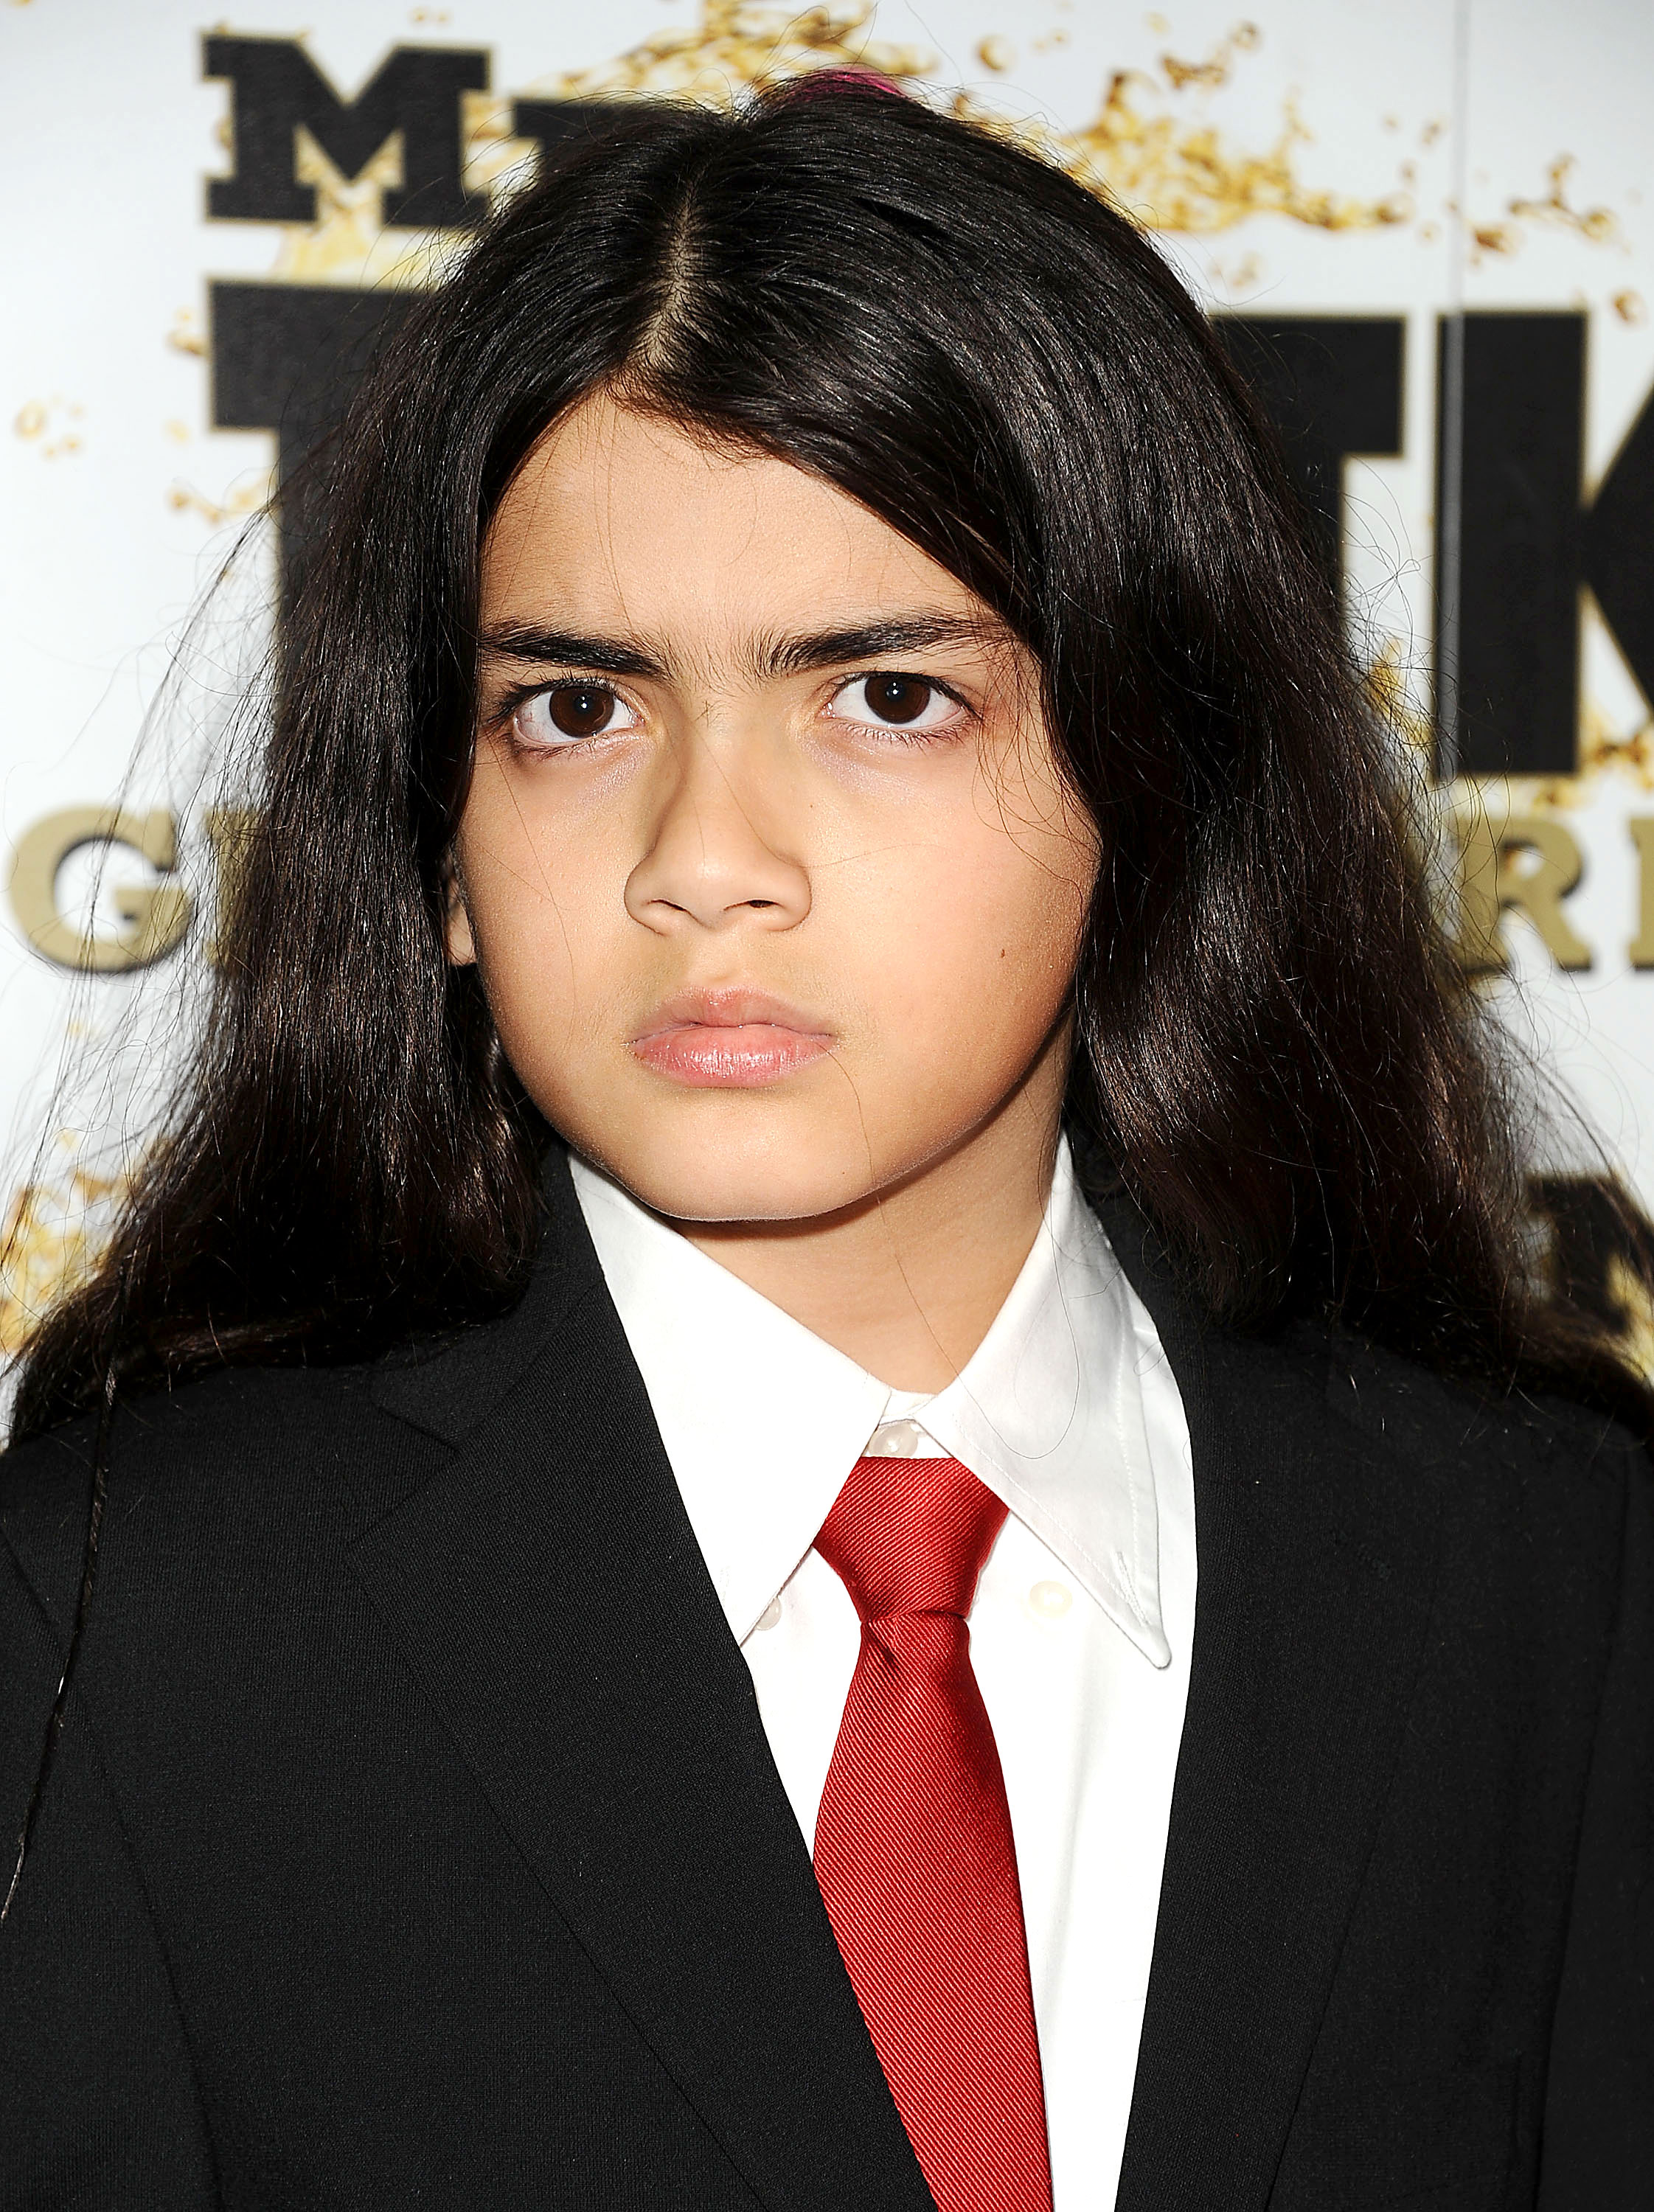 """Michael Jackson's Kids: Where Are They Now? - Prince has since traded in the nickname of """"Blanket"""" for a pet name of """"Bigi"""" and is attending the same high school his big brother graduated from — Buckley High in the Sherman Oaks neighborhood of L.A. Though he keeps a low profile — a source told Us in 2015 that he was """"really quiet"""" — Newsweek reports that the teenager has taken up martial arts and enjoys playing video games."""